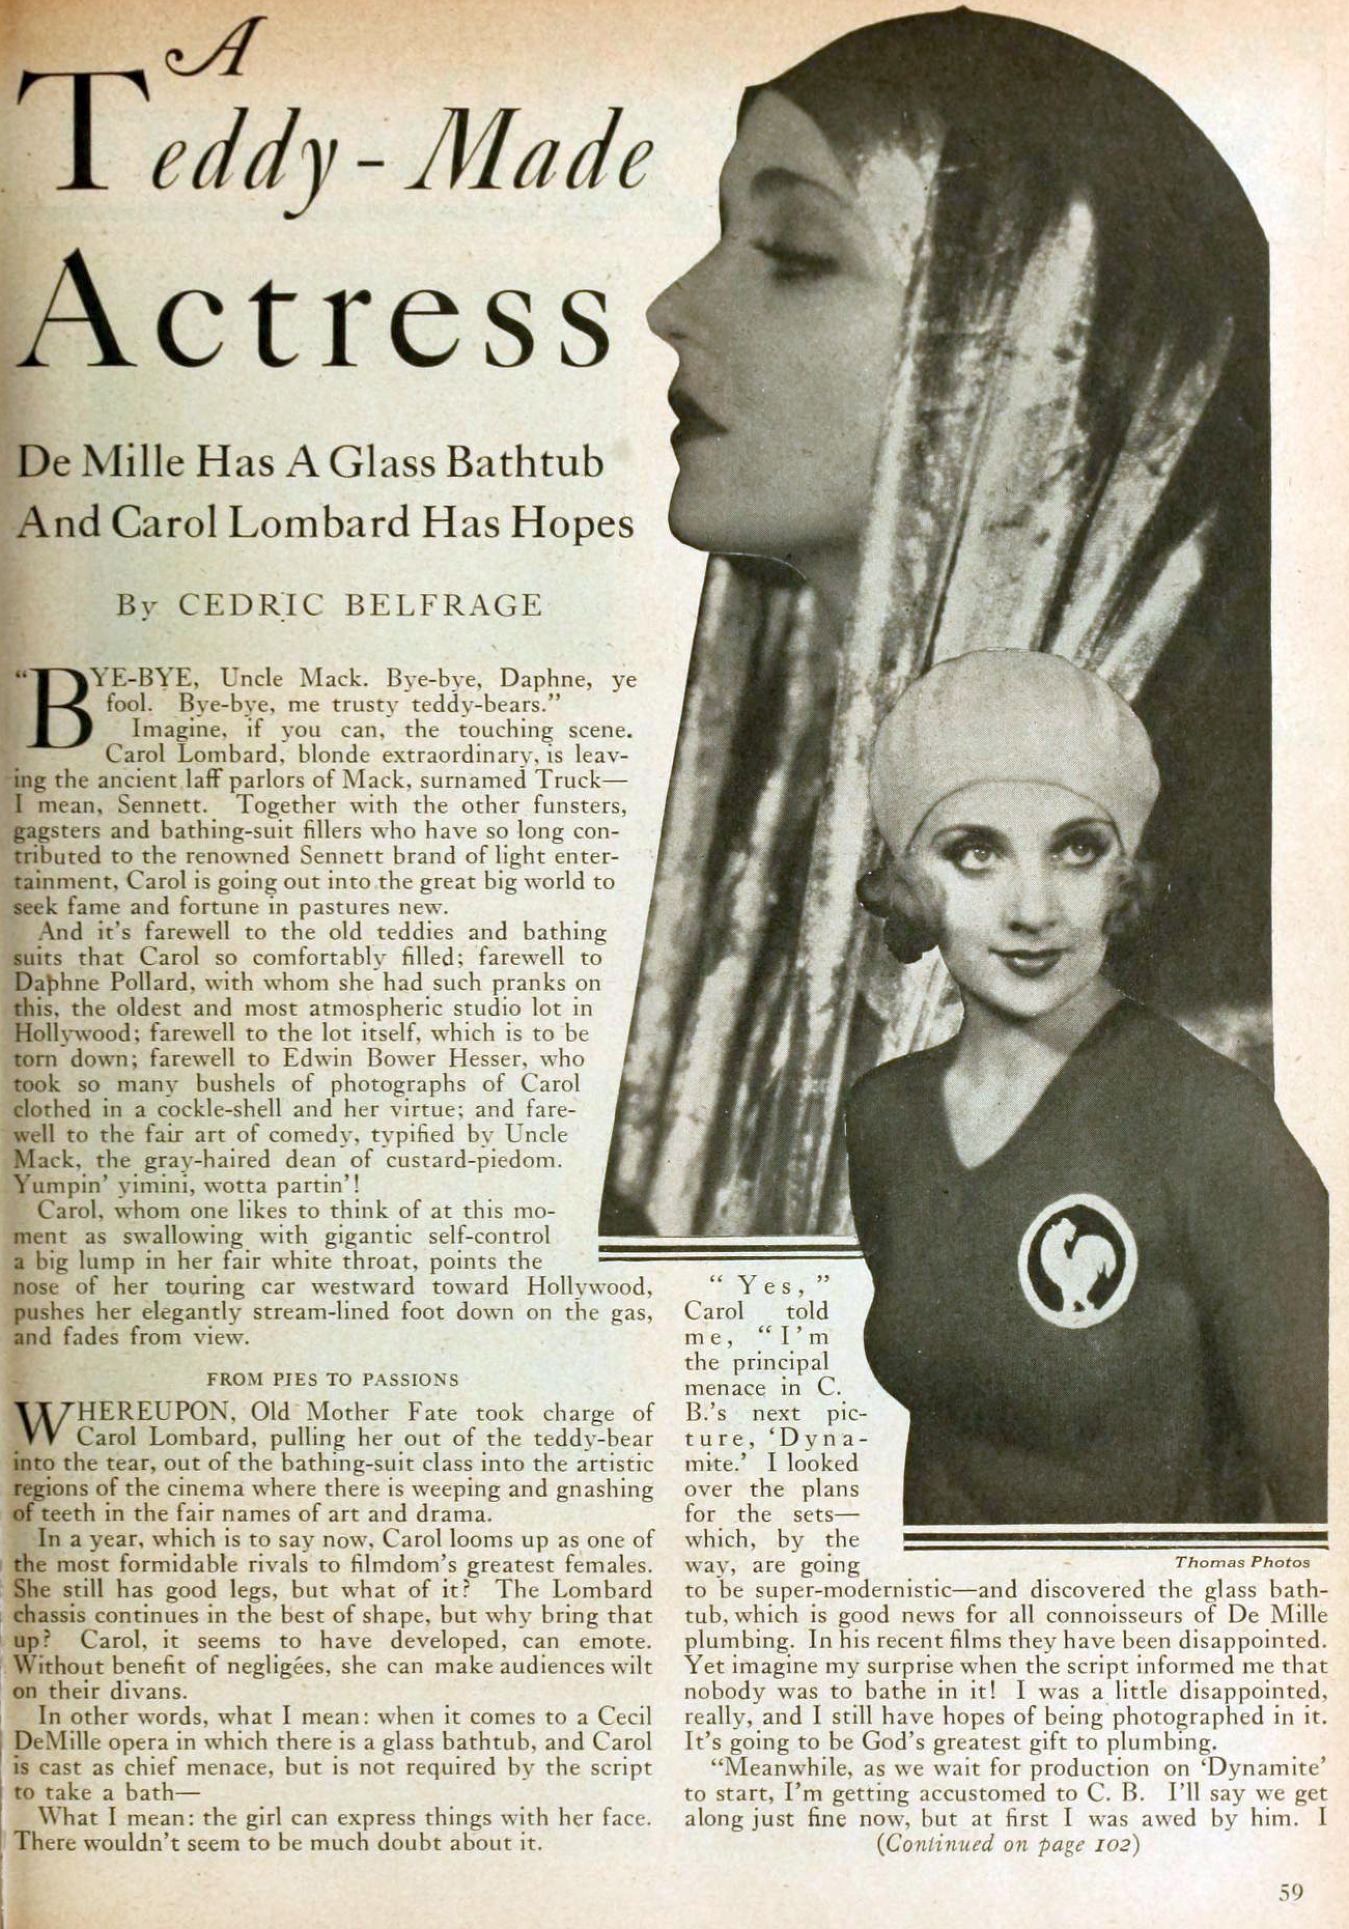 carole lombard motion picture may 1929 a teddy-made actress 01a